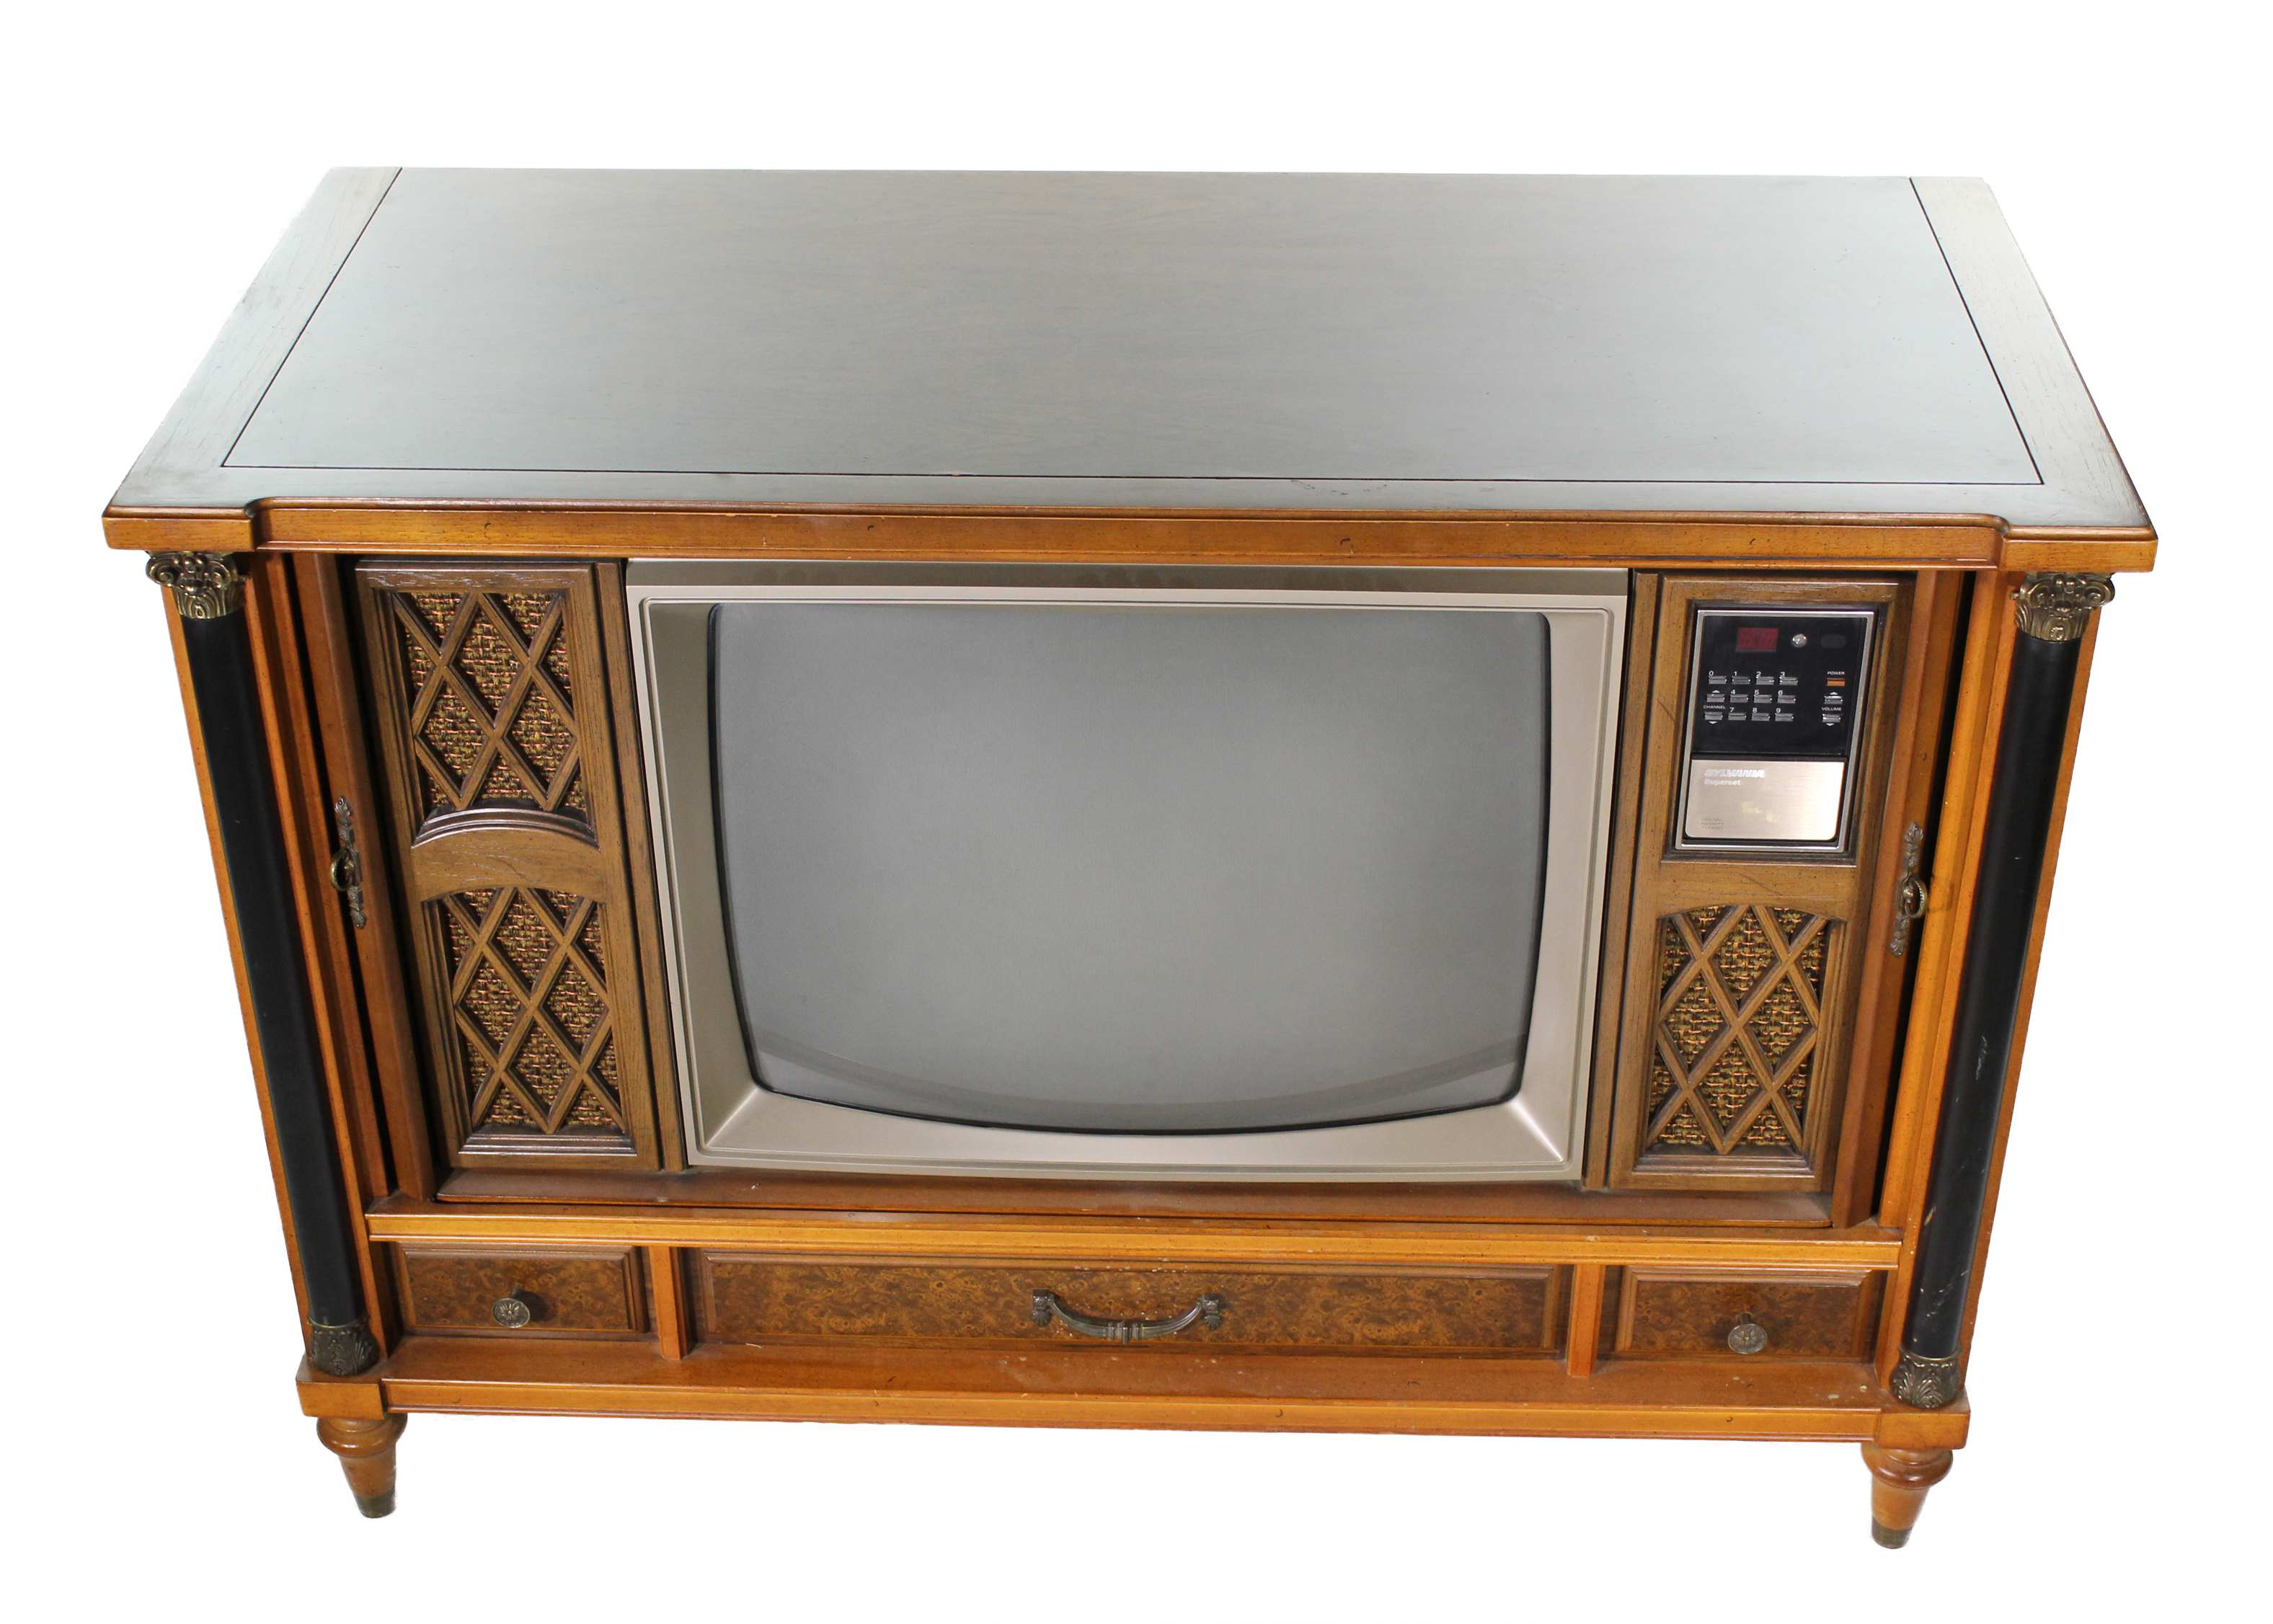 1968 Color Converted TV